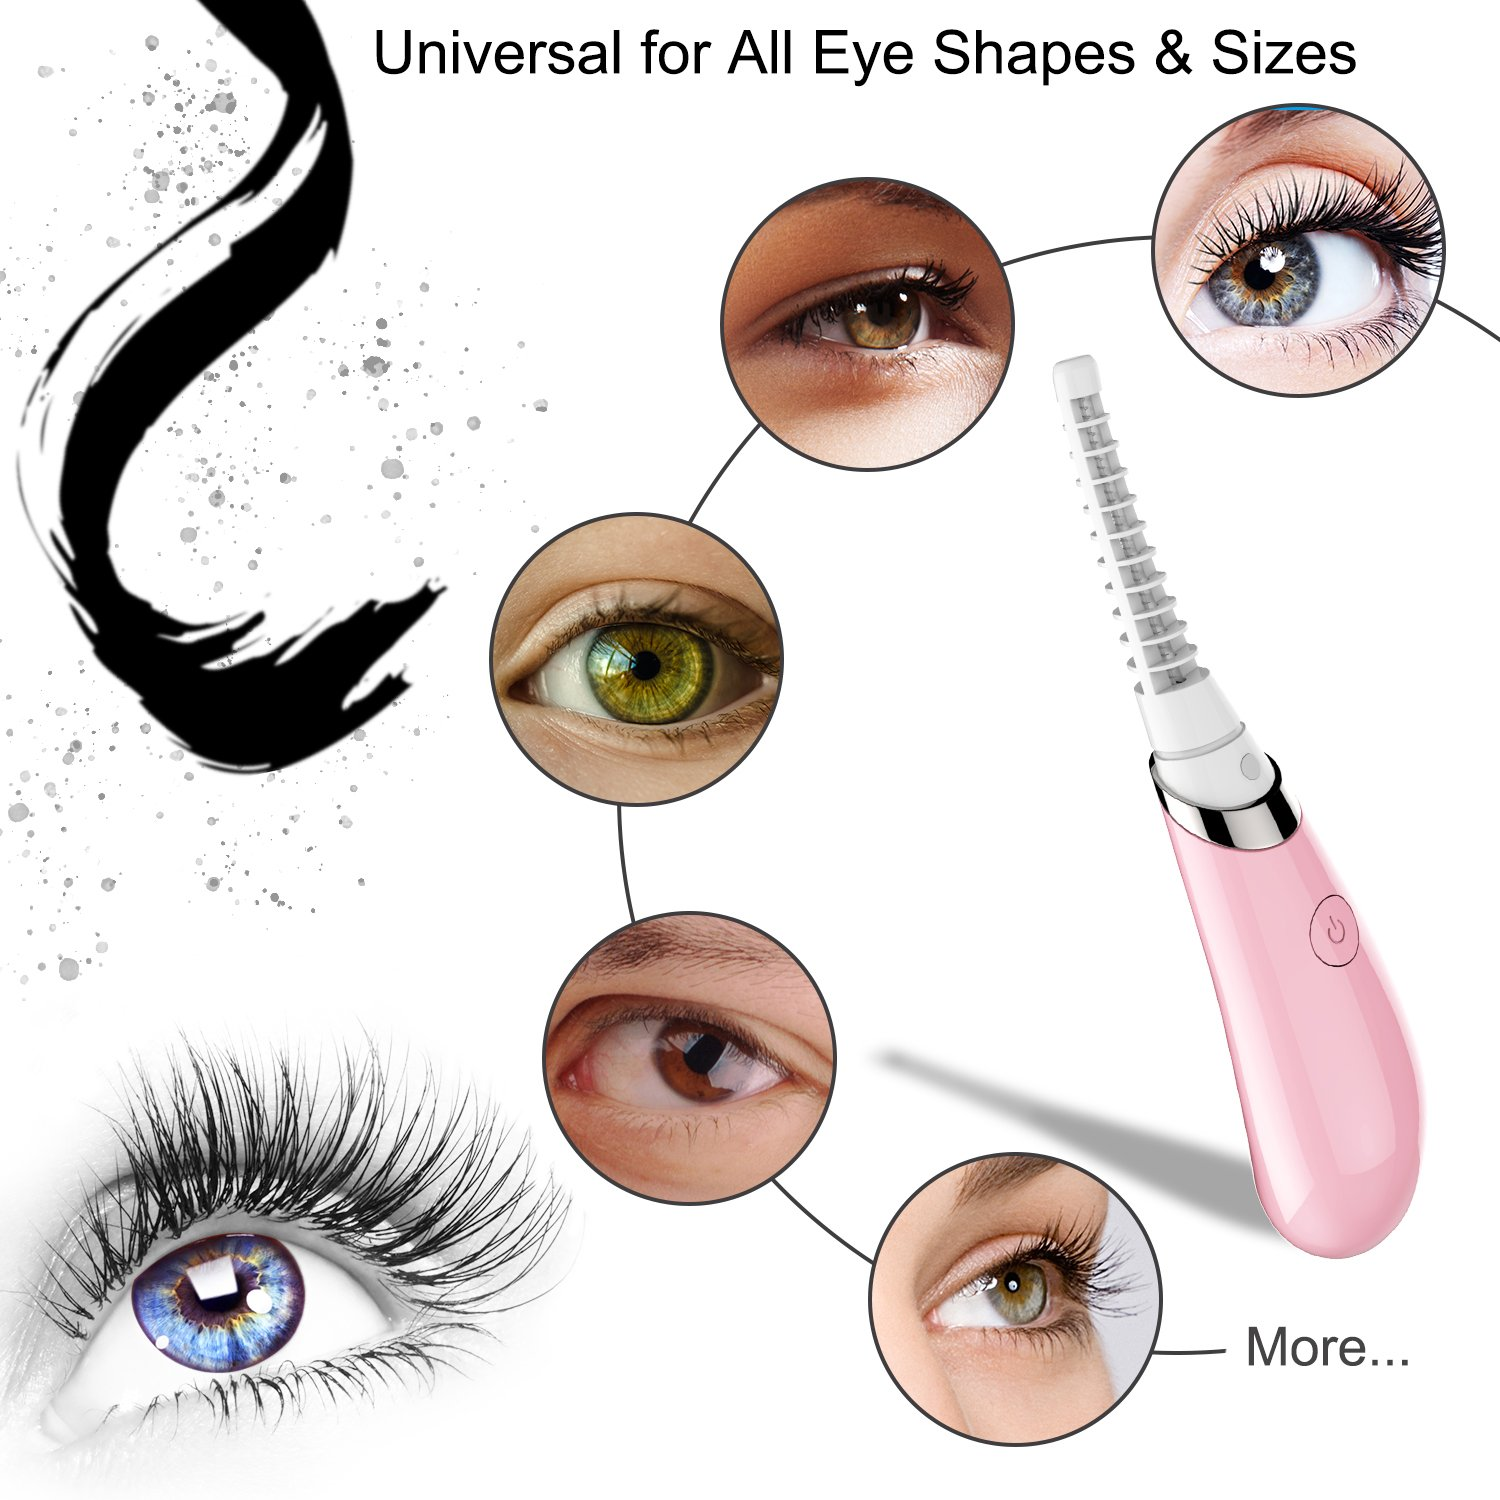 Amazon.com : Tuisy Electric Heated Eyelash Curler - Rechargeable Automatic Fast Heated Compact Lash Curler with Comb Long Lasting Fits All Eye Shapes : ...